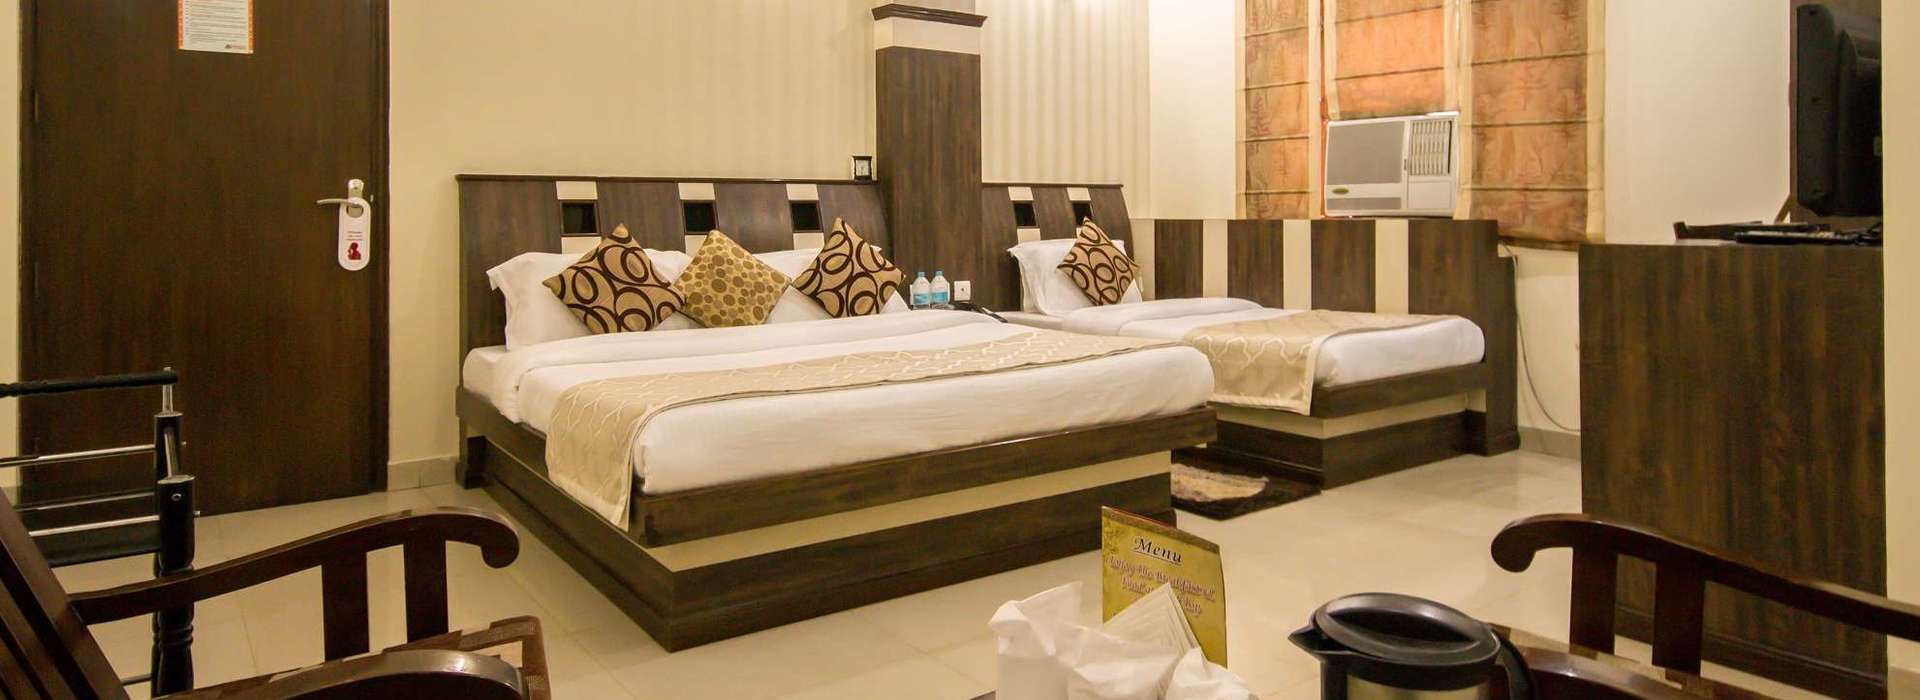 Deluxe Rooms at Grand Park Inn Hotel In Karol Bagh